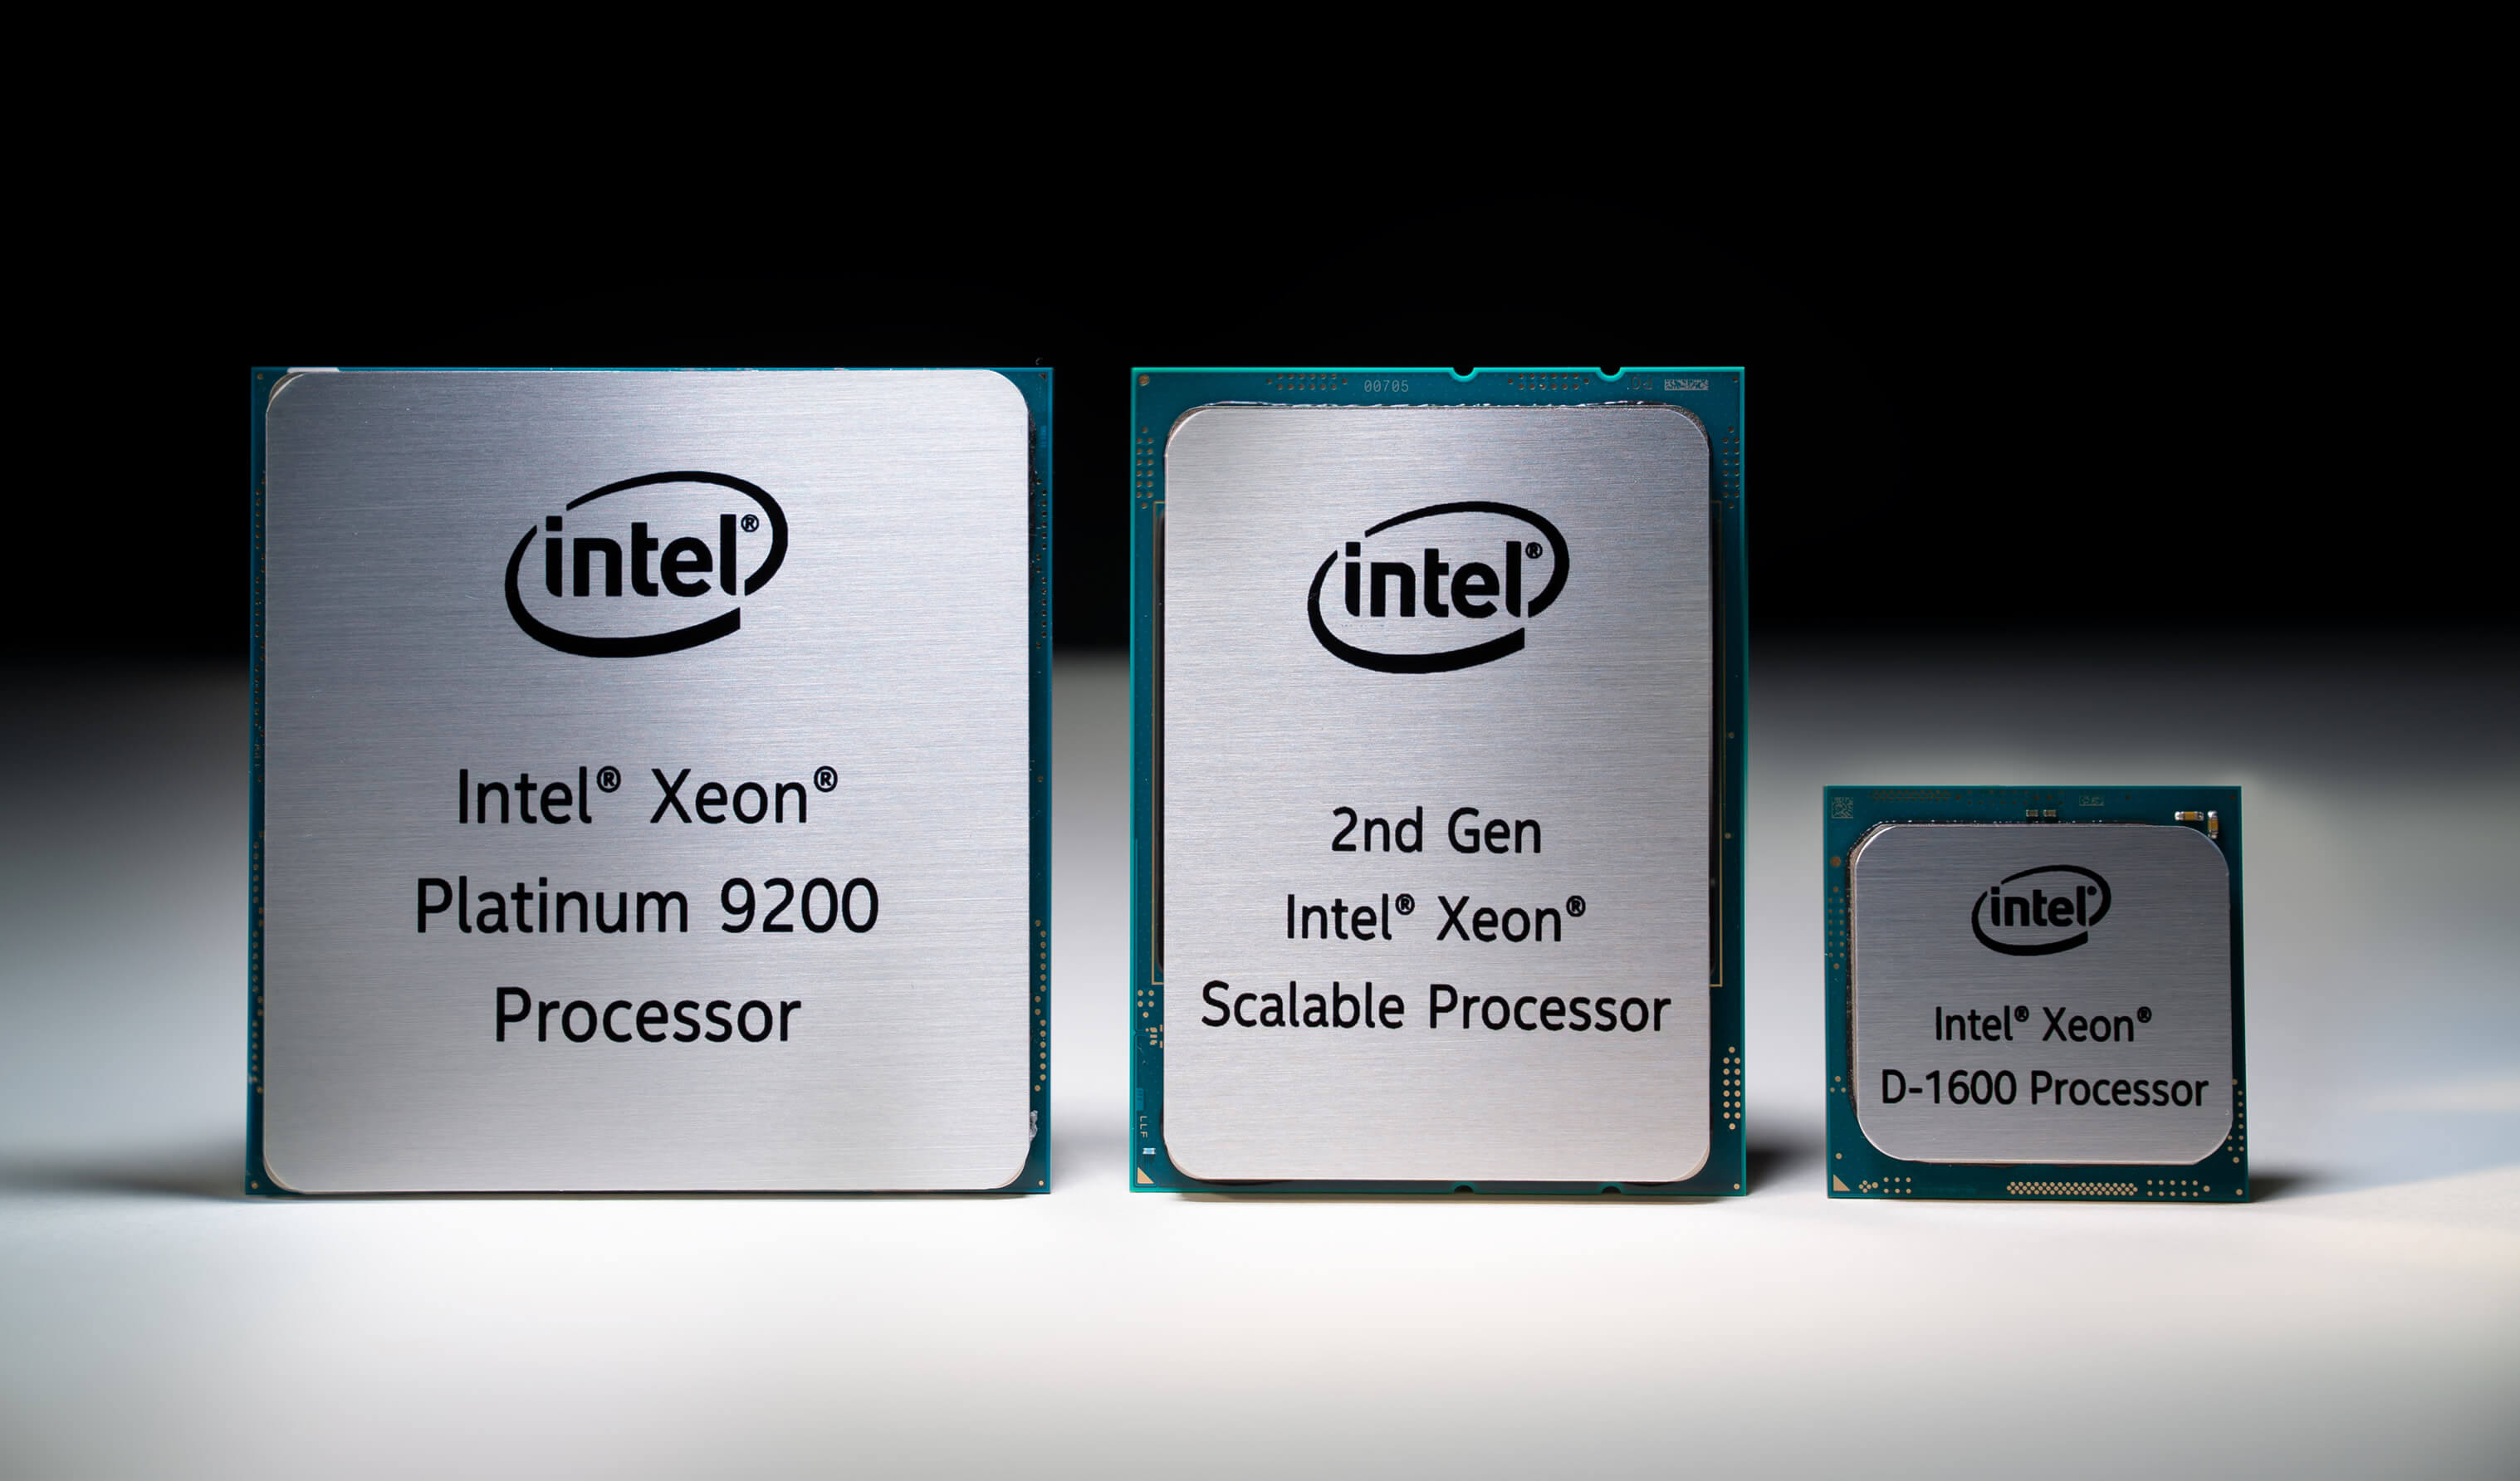 Opinion: Intel helps drive data center advancements